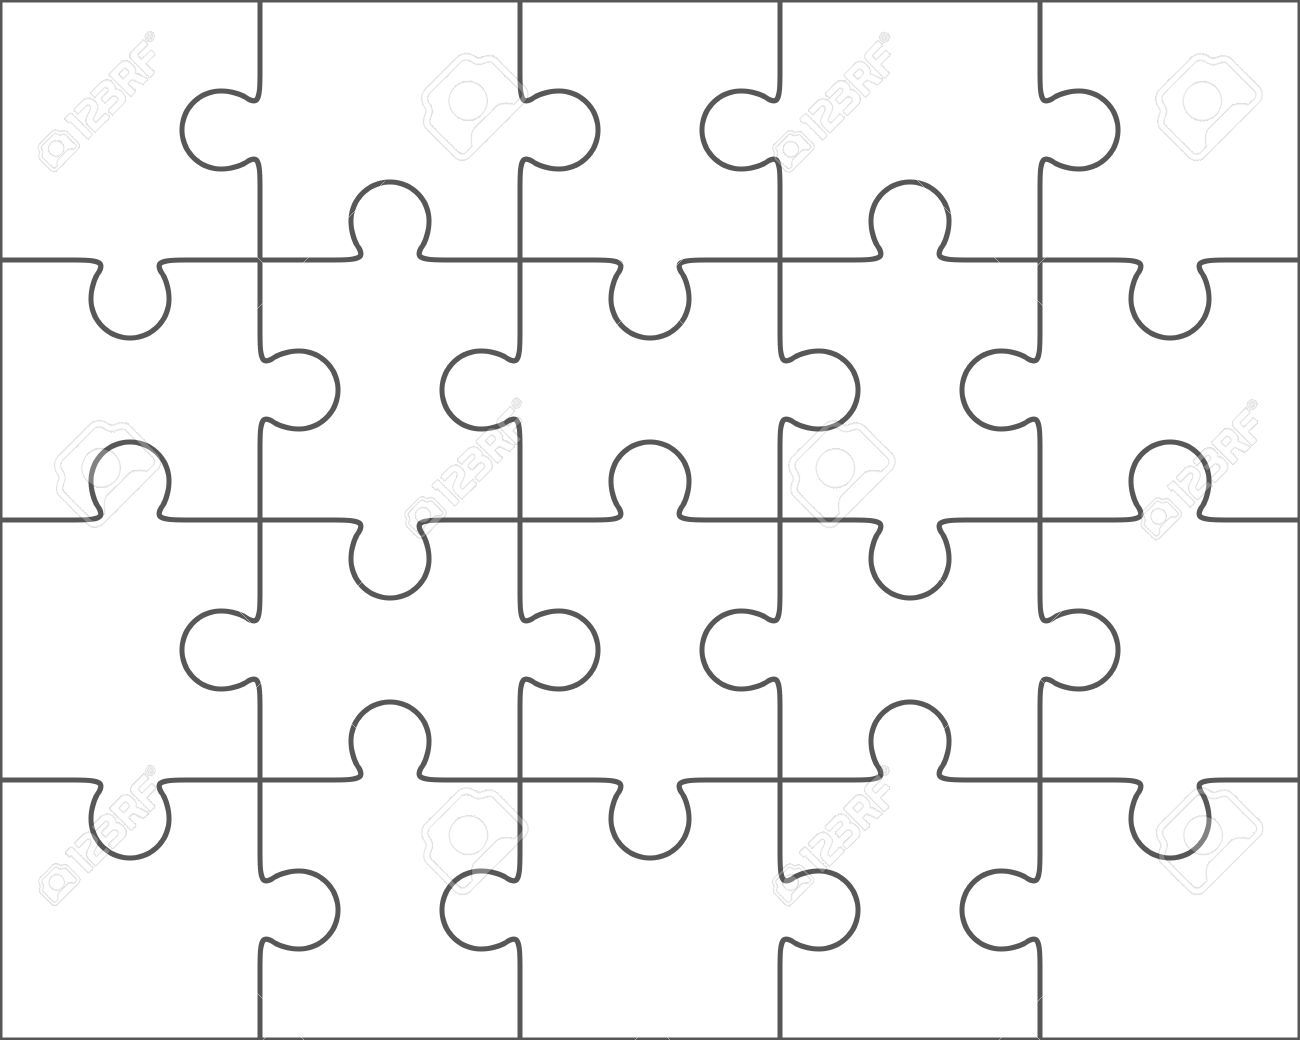 003 Rare Jig Saw Puzzle Template Idea  Printable Blank Jigsaw Vector Free PngFull